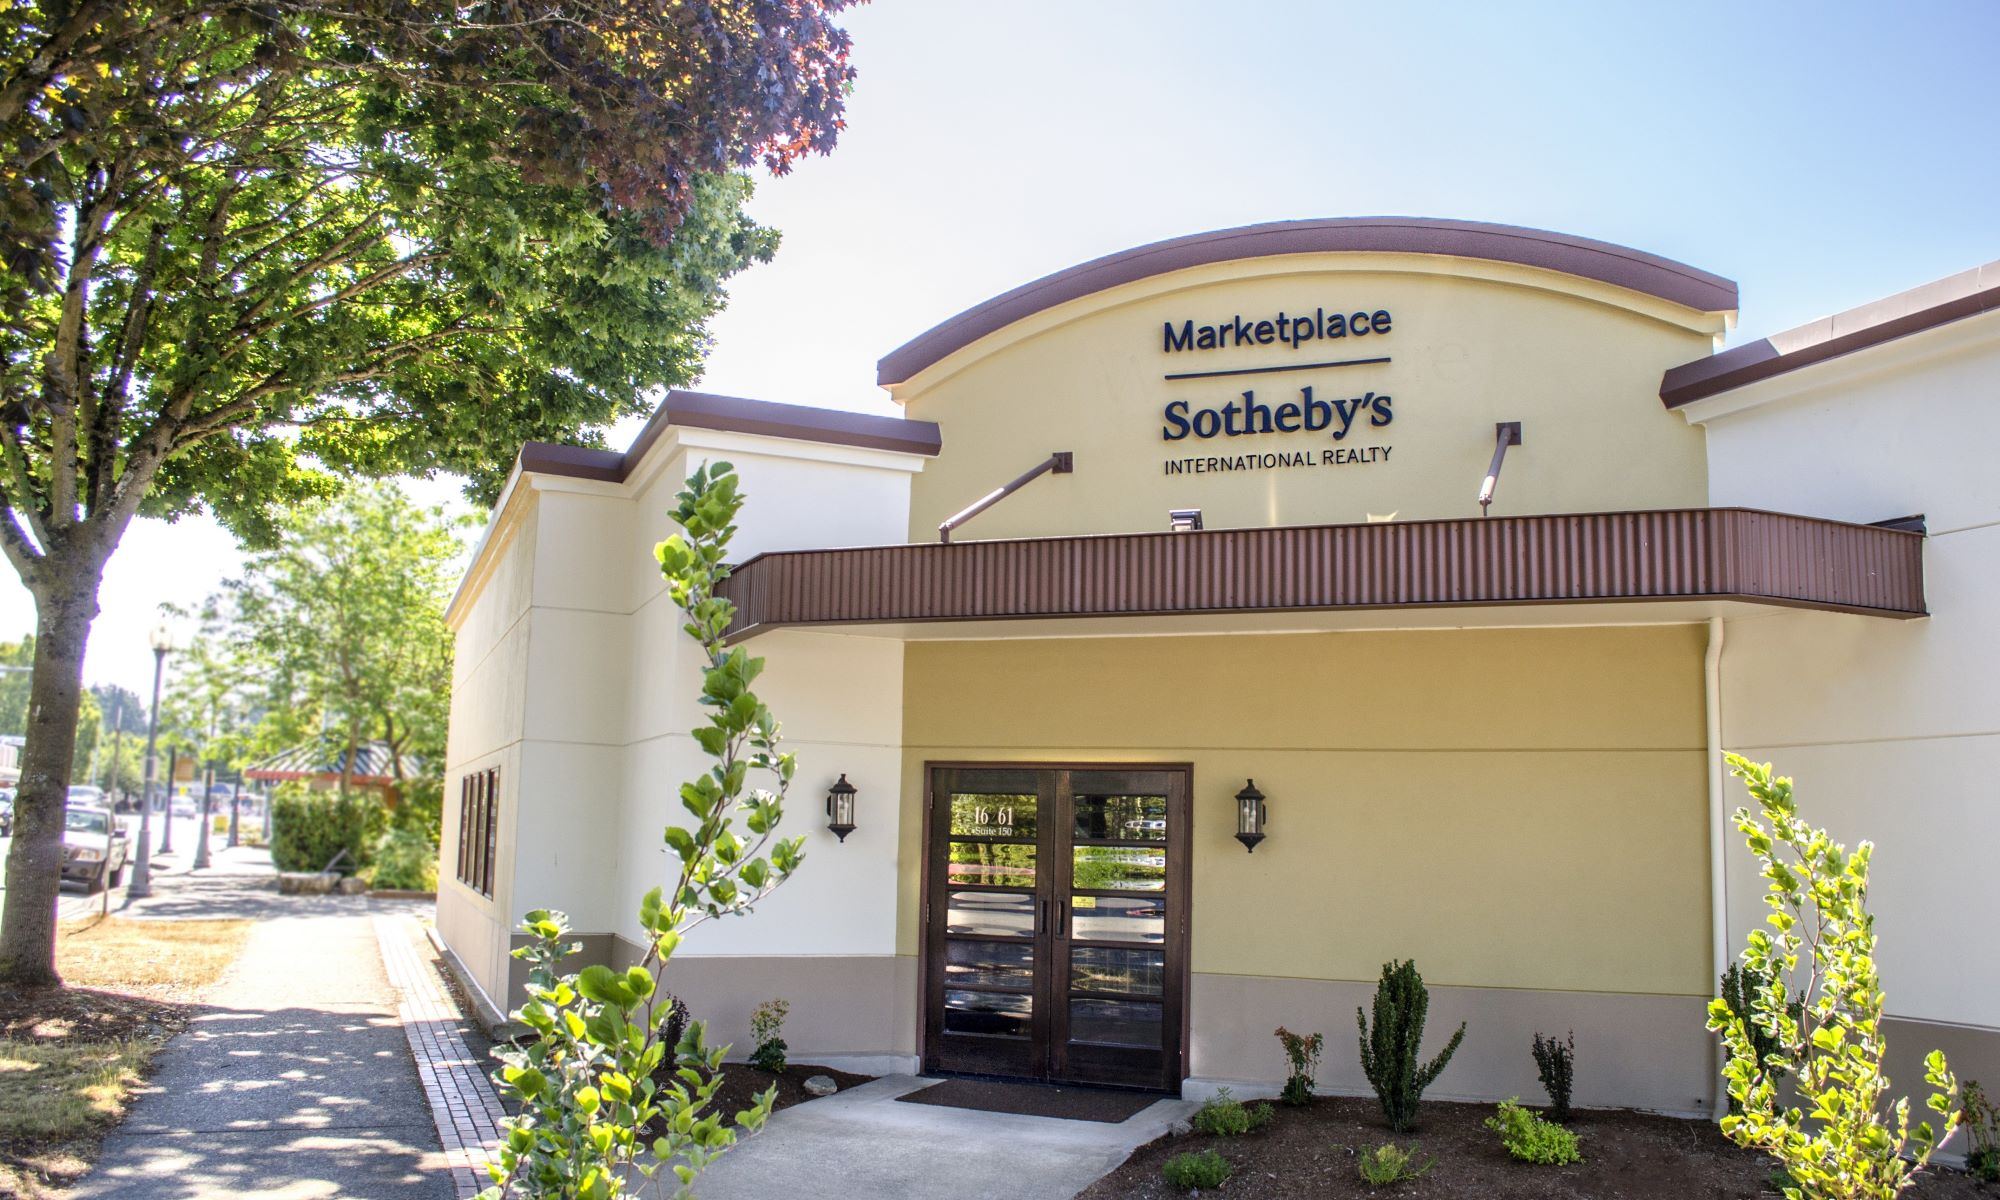 Office Marketplace Sotheby's International Realty Photo